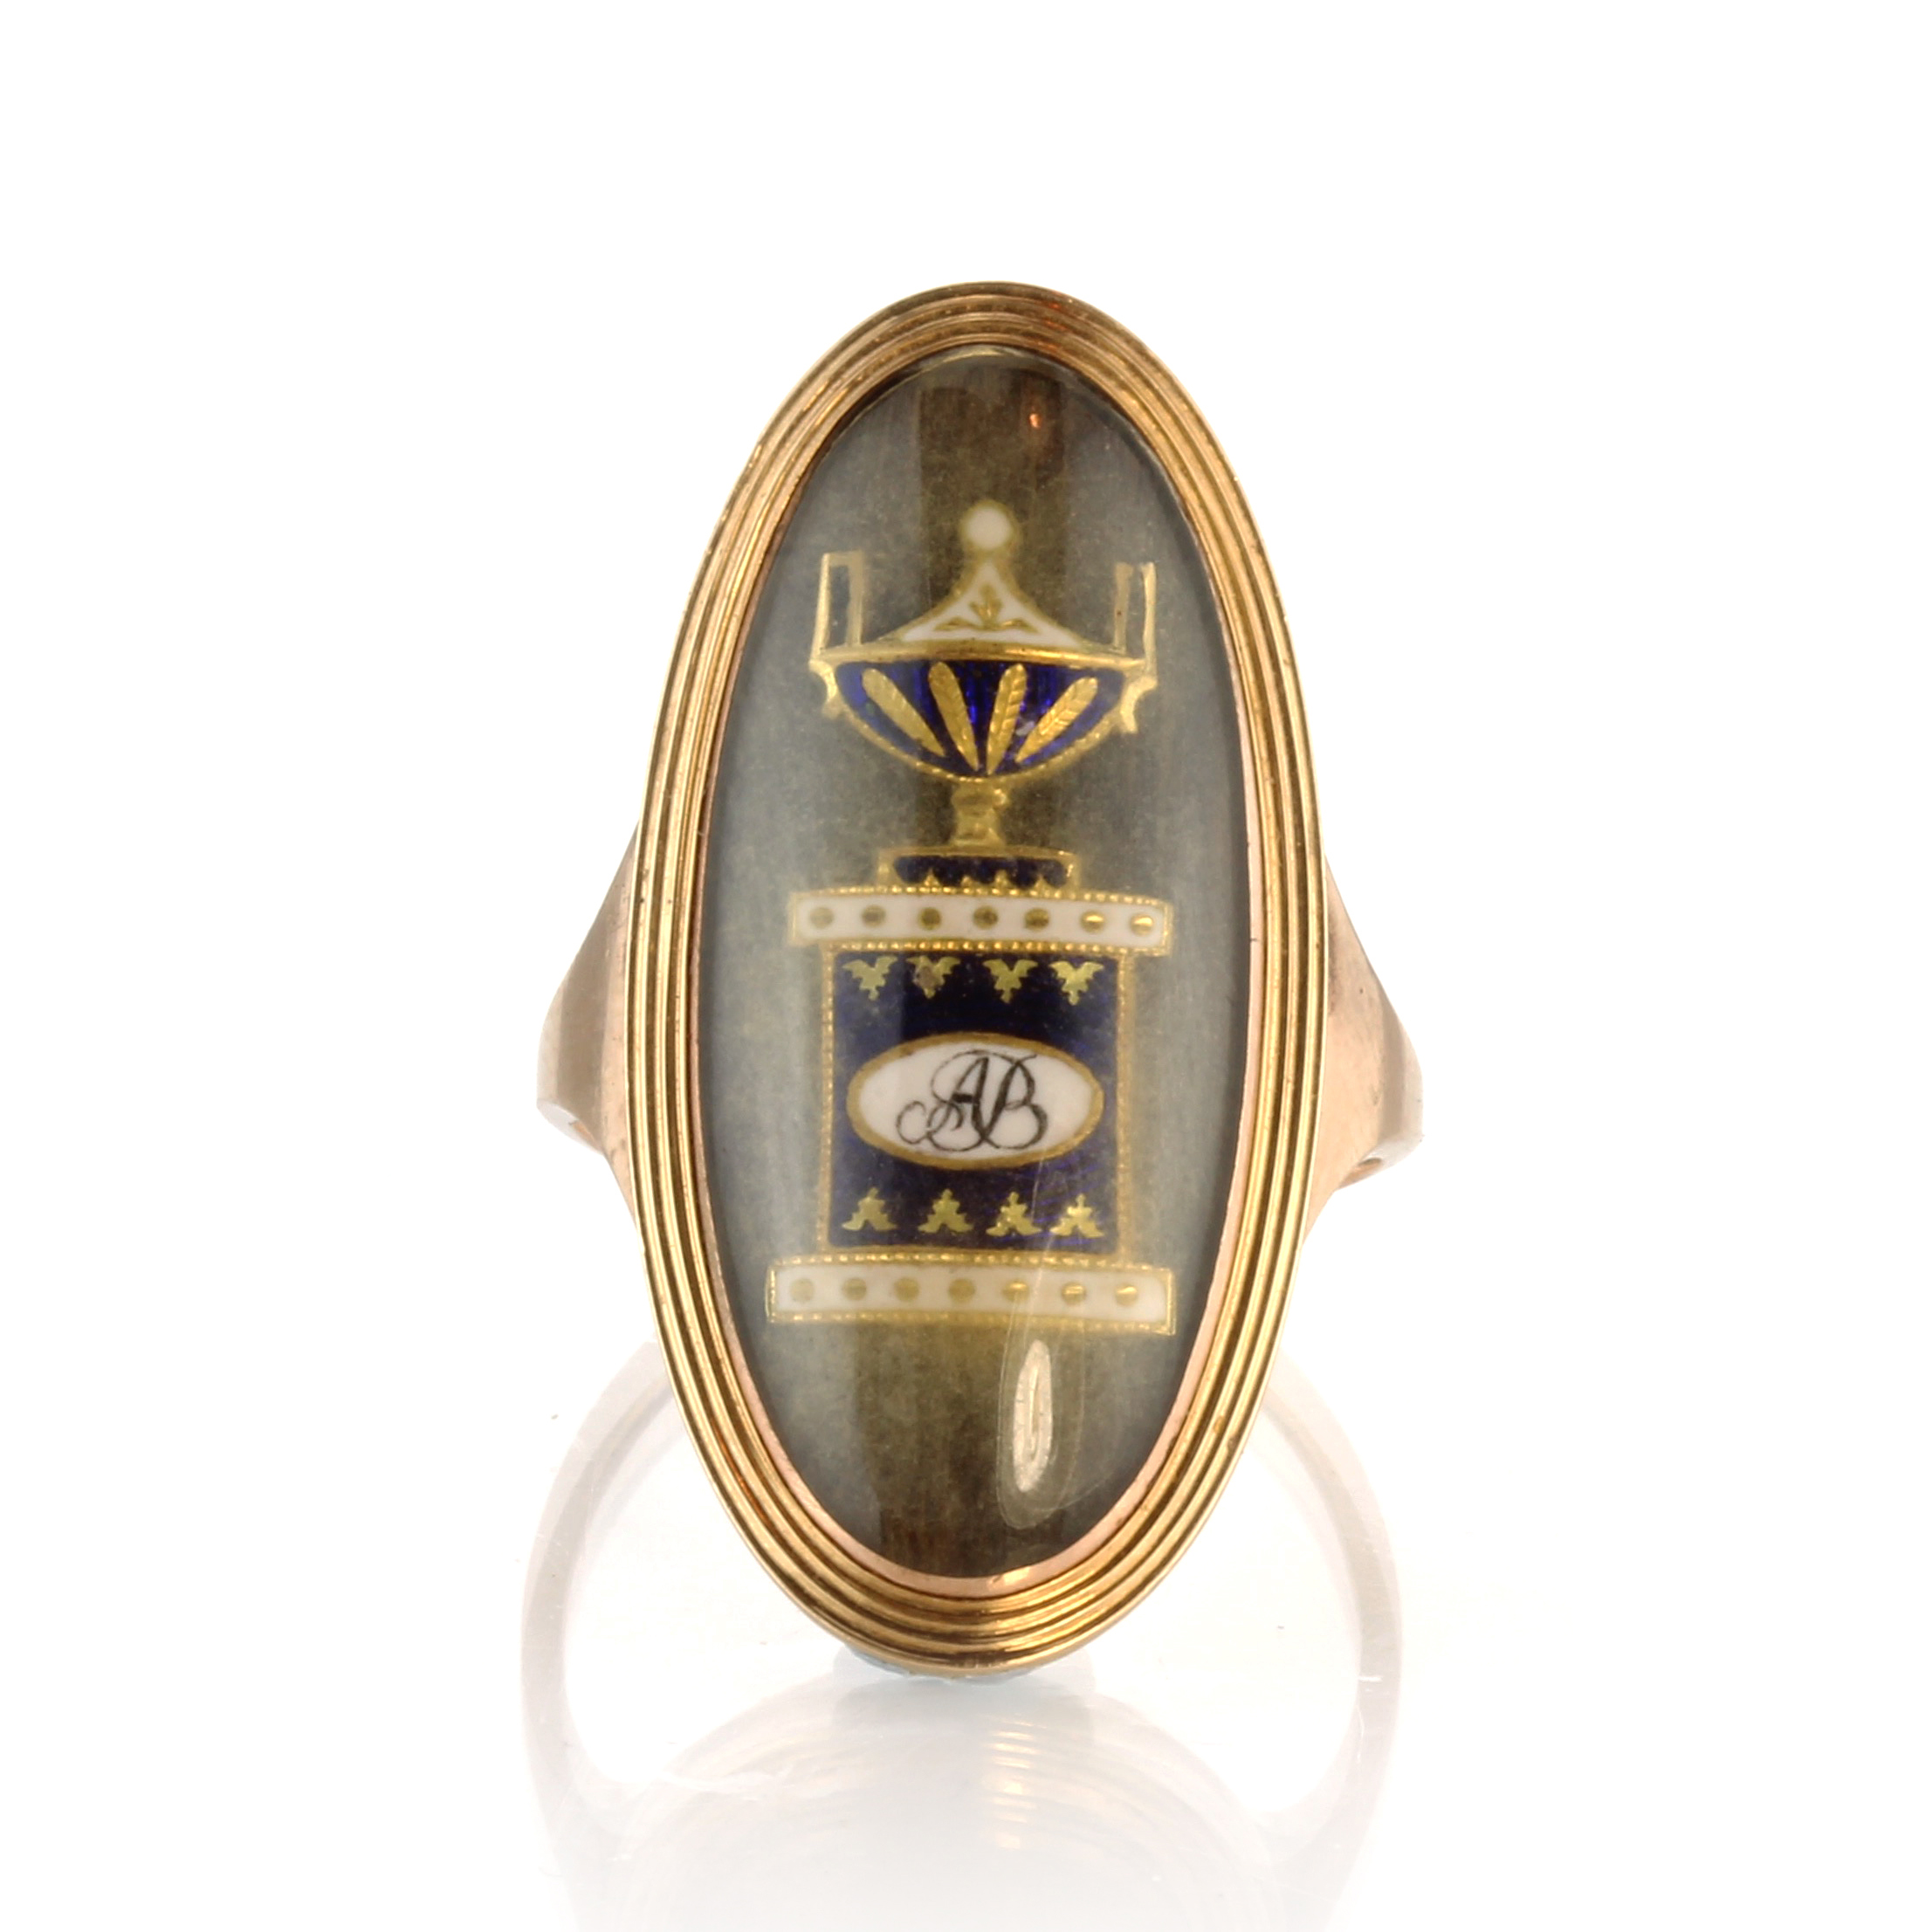 Los 3 - An antique Georgian hairwork mourning urn ring in high carat yellow gold designed as a large